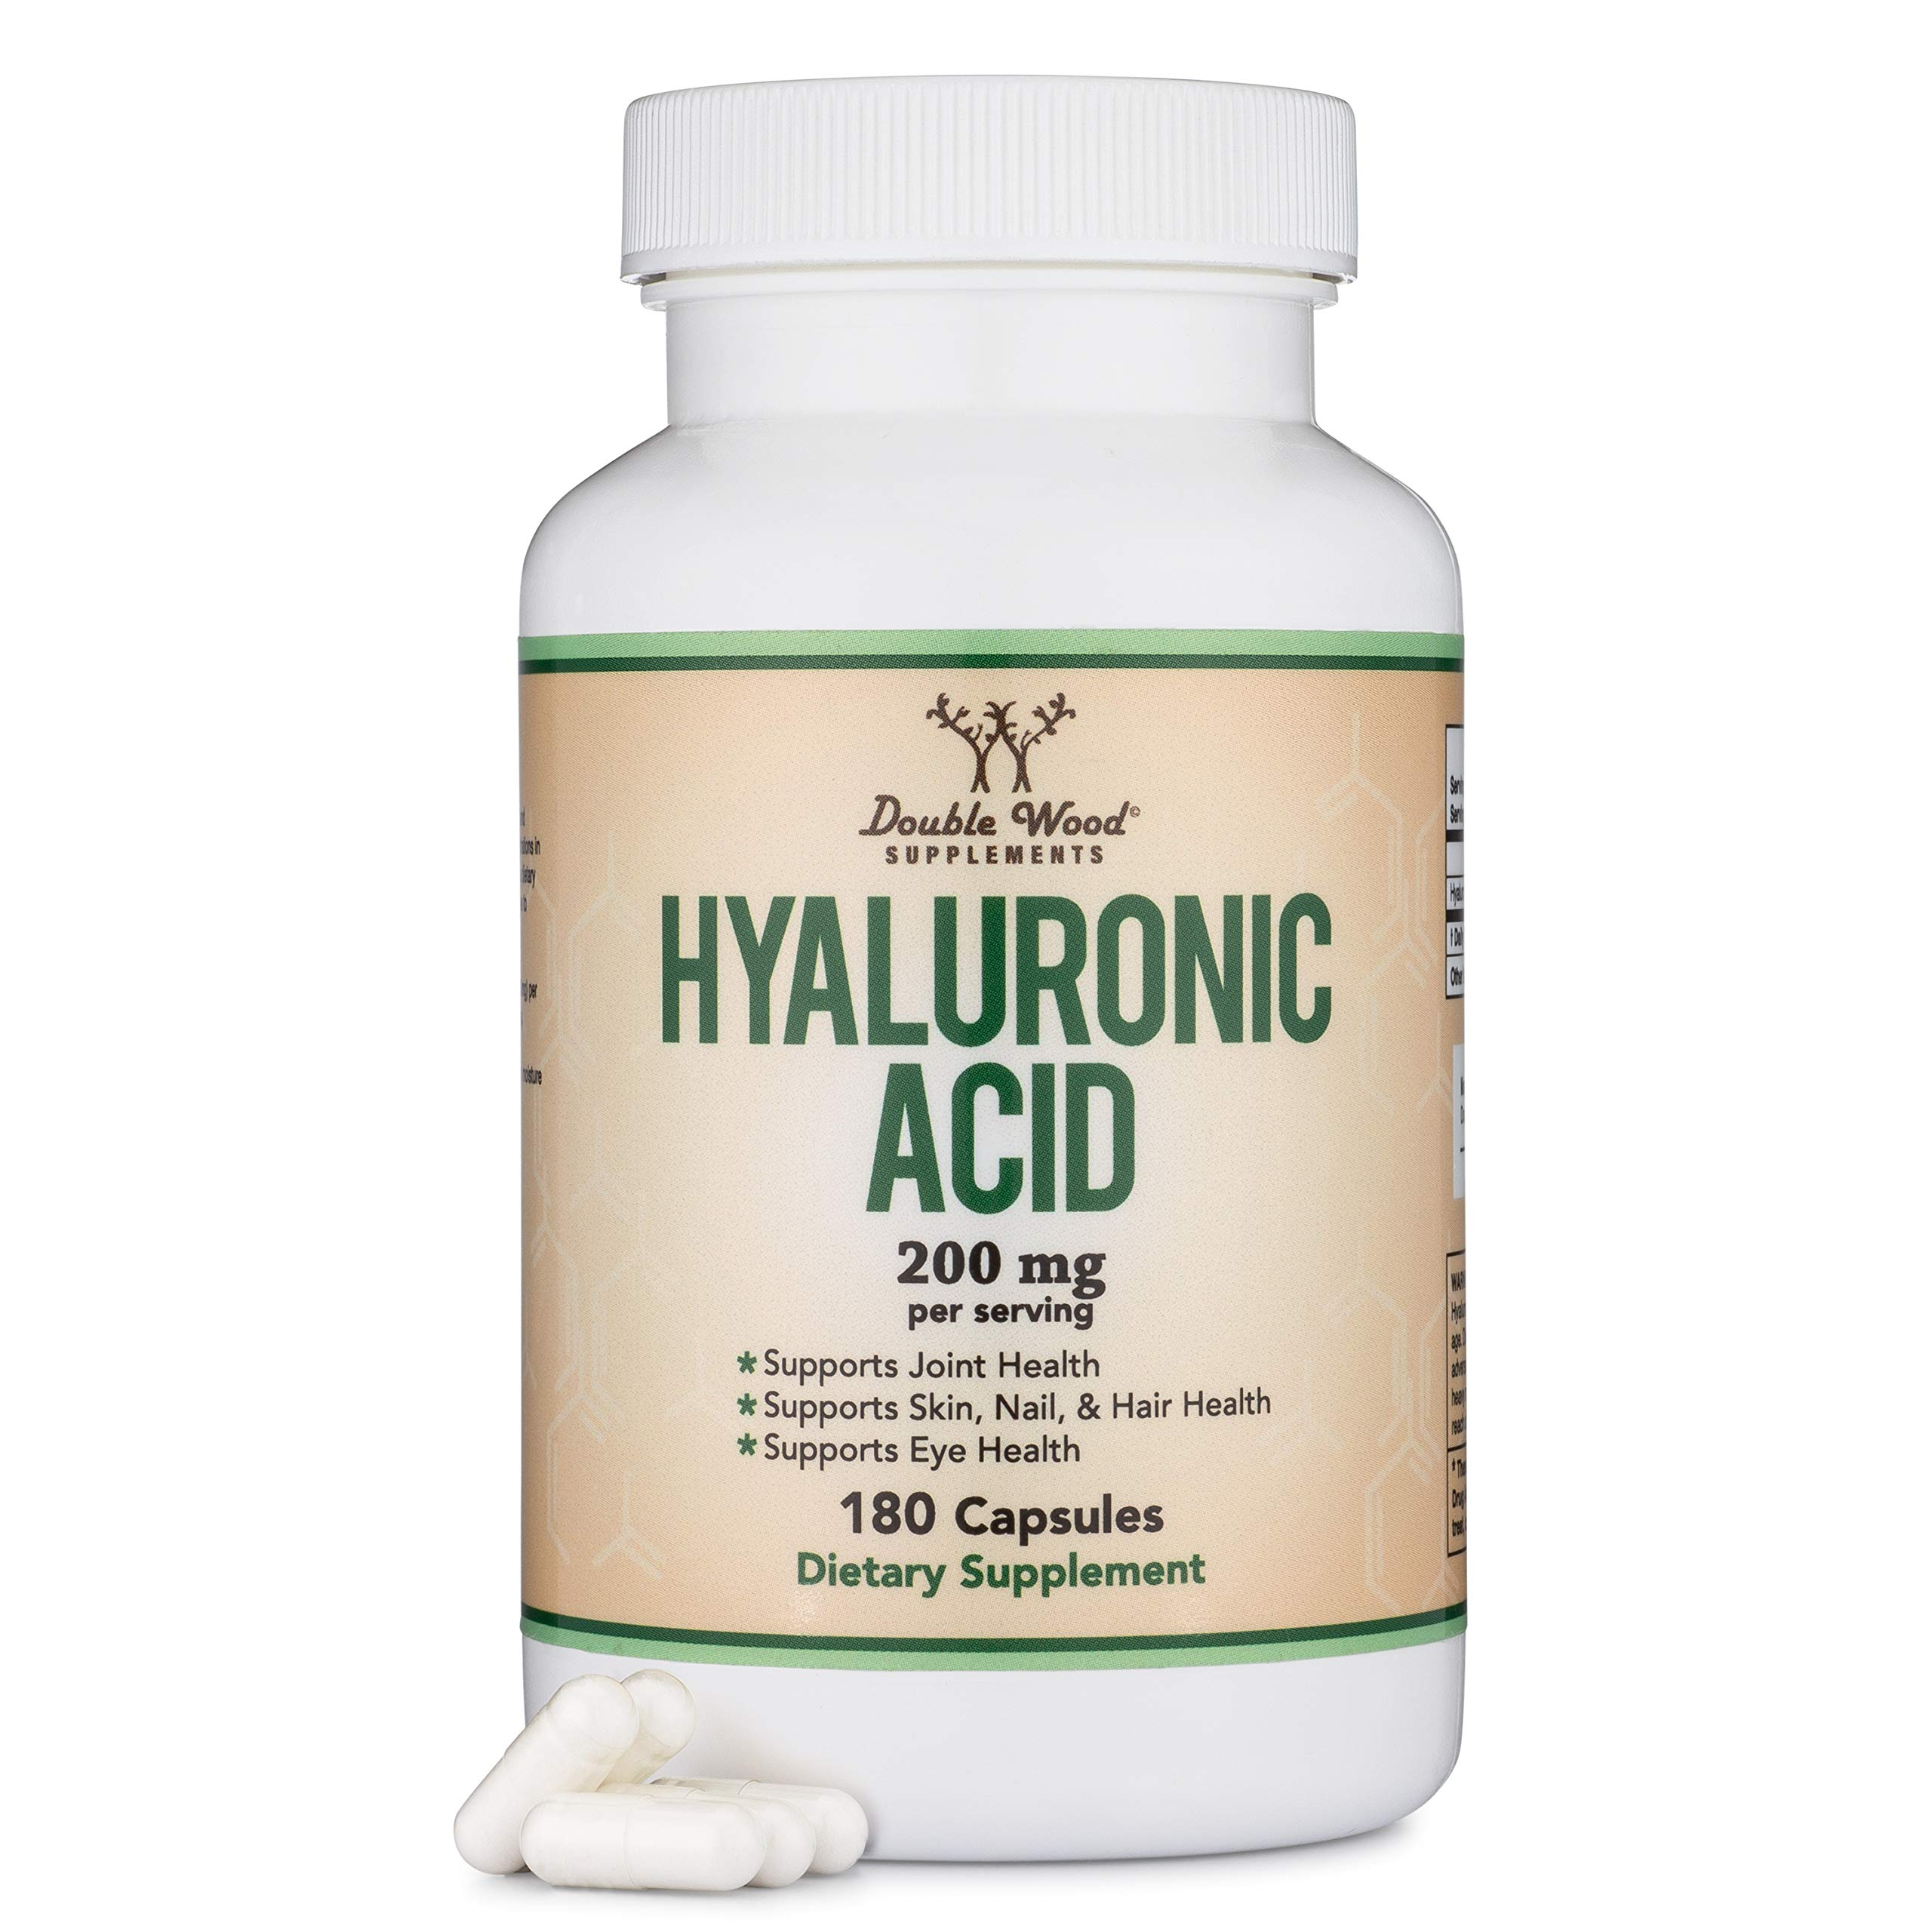 Hyaluronic Acid Supplement -180 Capsules (Enhances Effects of Hyaluronic Acid Serum for Face) 200mg Per Serving for Skin and Face Aging Support by Double Wood Supplements (Acido Hialuronico)